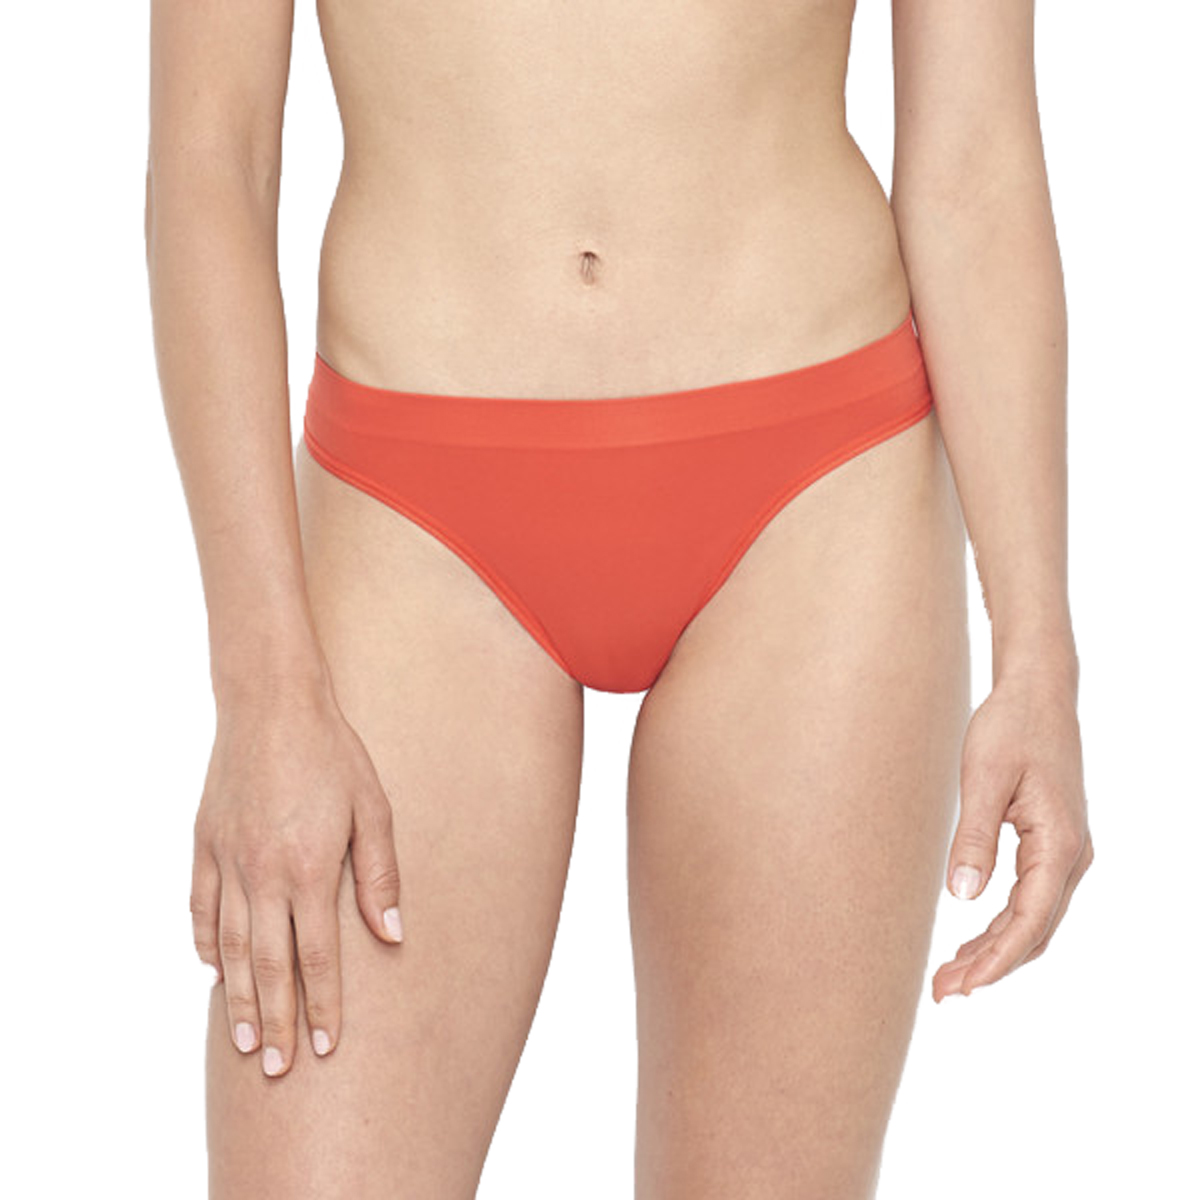 BeMe NYC Women's Invisibles Thong Panties